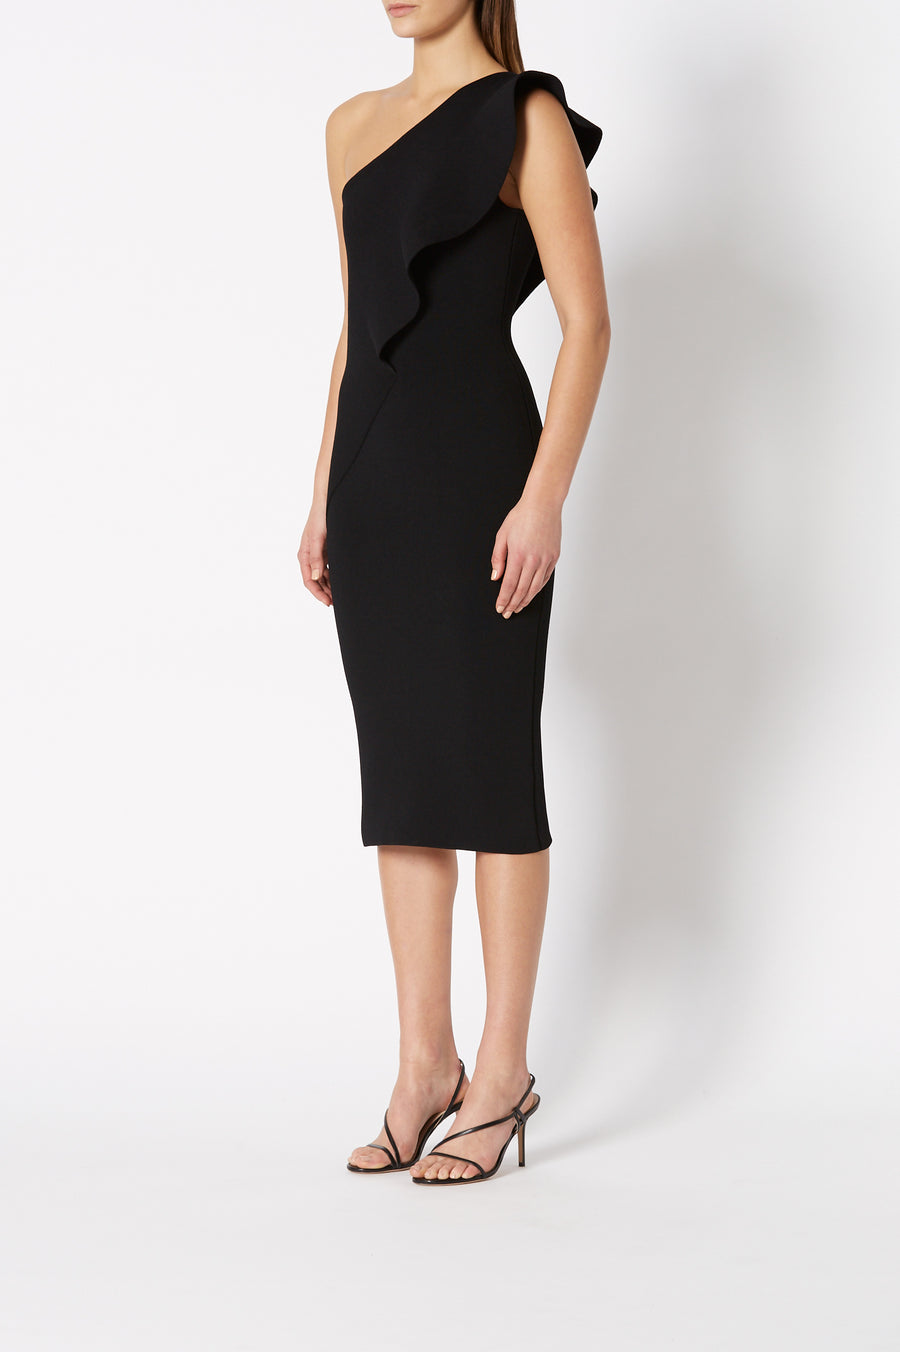 The Crepe Knit Ruffle Dress is a one-shoulder dress, fitted throughout